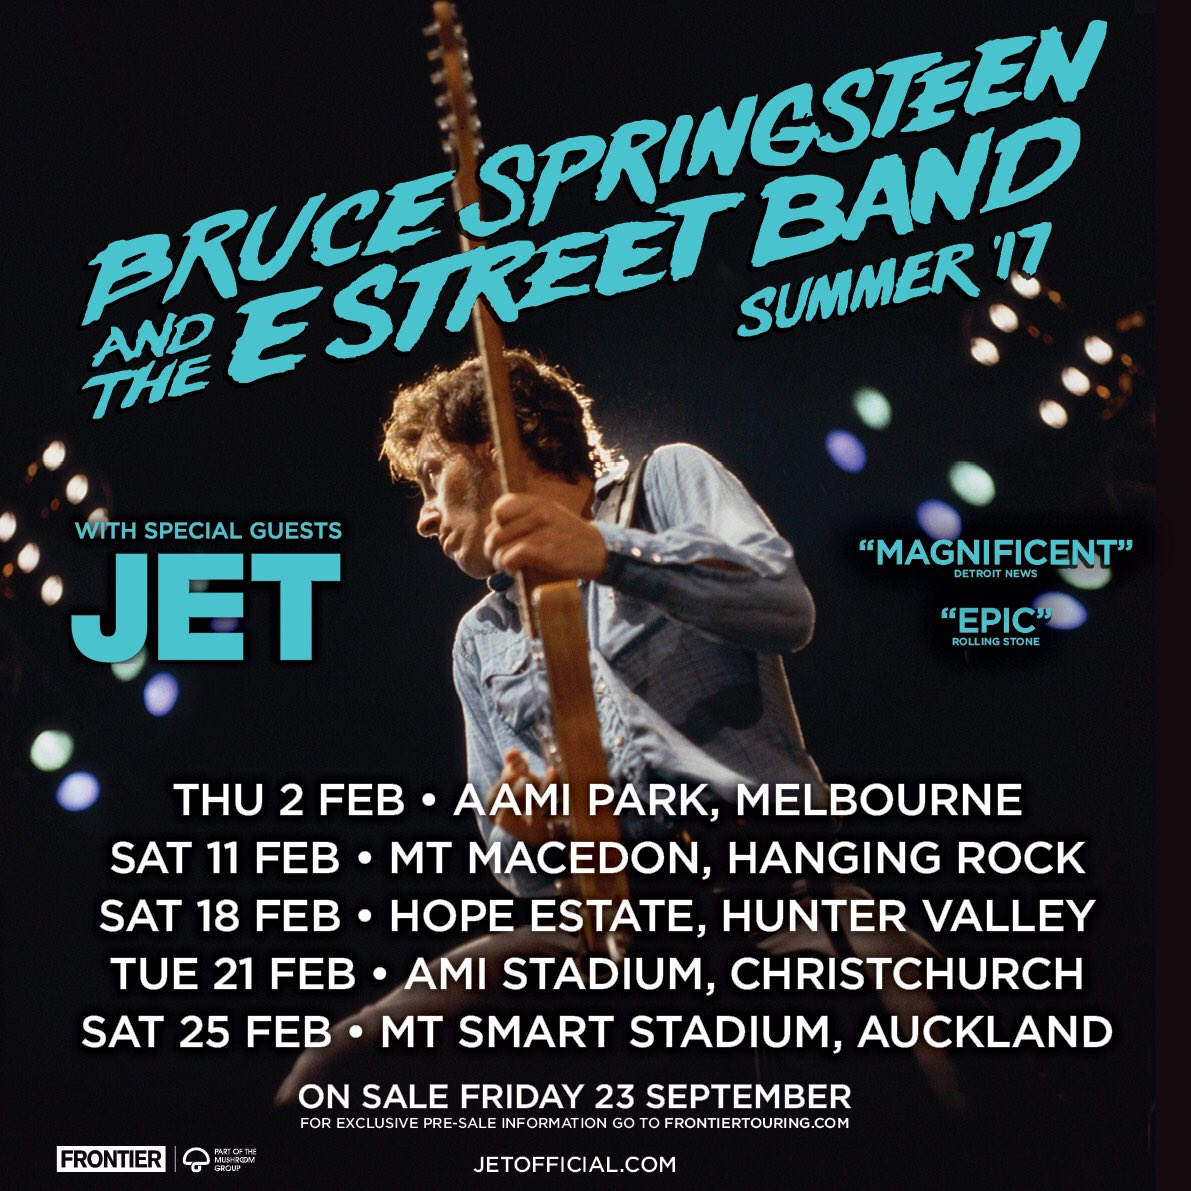 When The Boss calls, you can't say no… 5 shows in Australia & NZ February 2017    Full details @frontiertouring https://t.co/MjRsvbm9wq